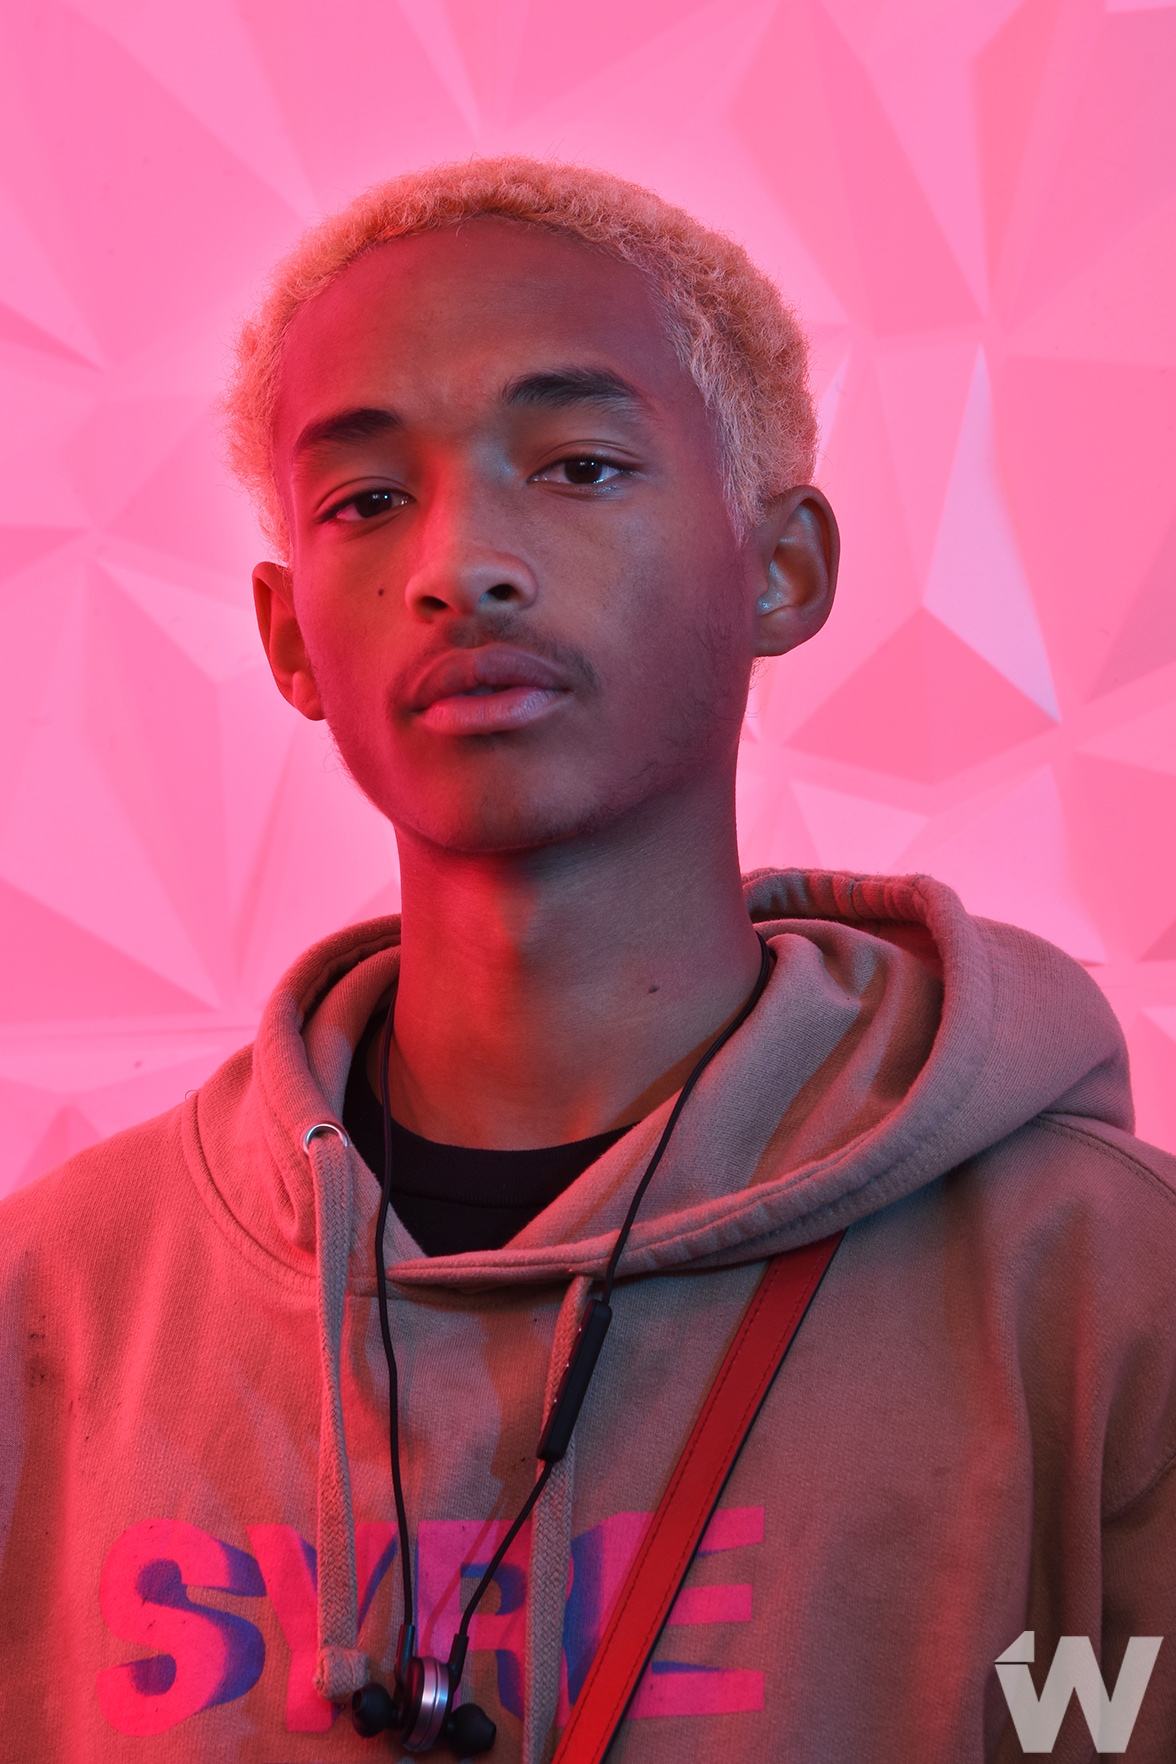 JADEN SMITH SKATE KITCHEN